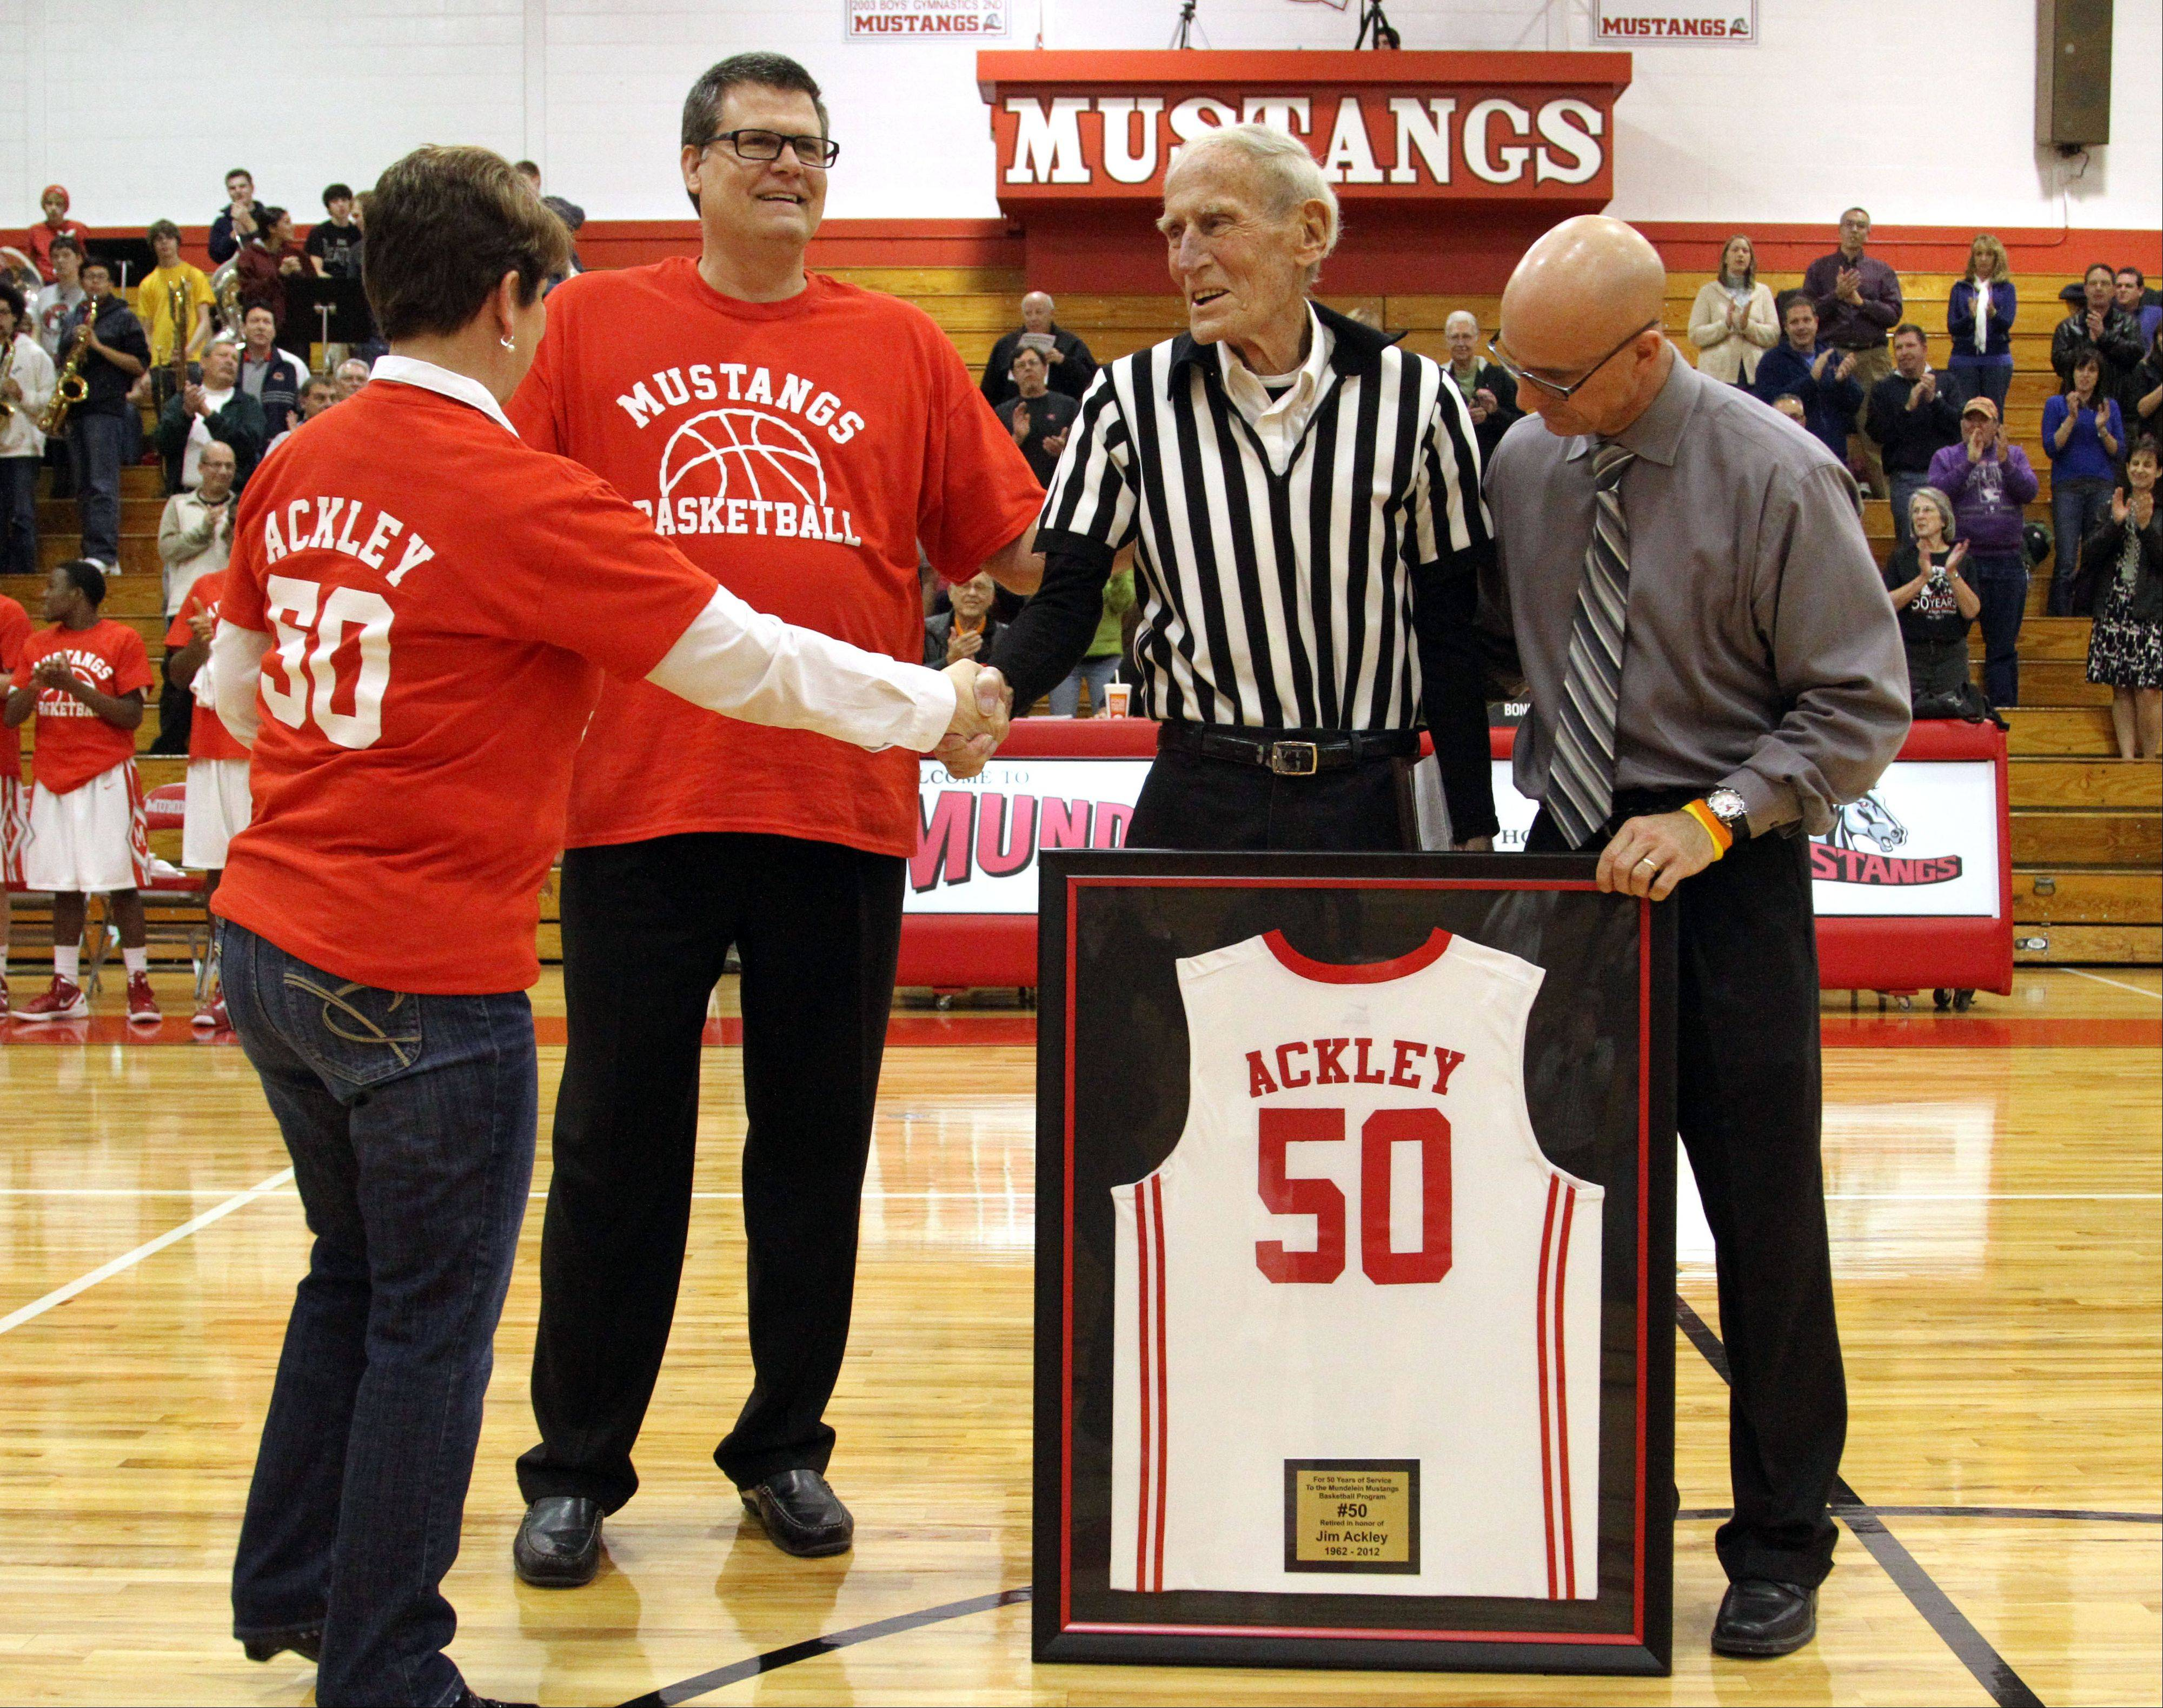 Mundelein basketball scorekeeper Jim Ackley, in stripes, is honored by, from left, superintendent Jody Ware, coach Richard Knar and athletic director Perry Wilhelm for 50 years of service at the school before Tuesday night's game against Lake Zurich.